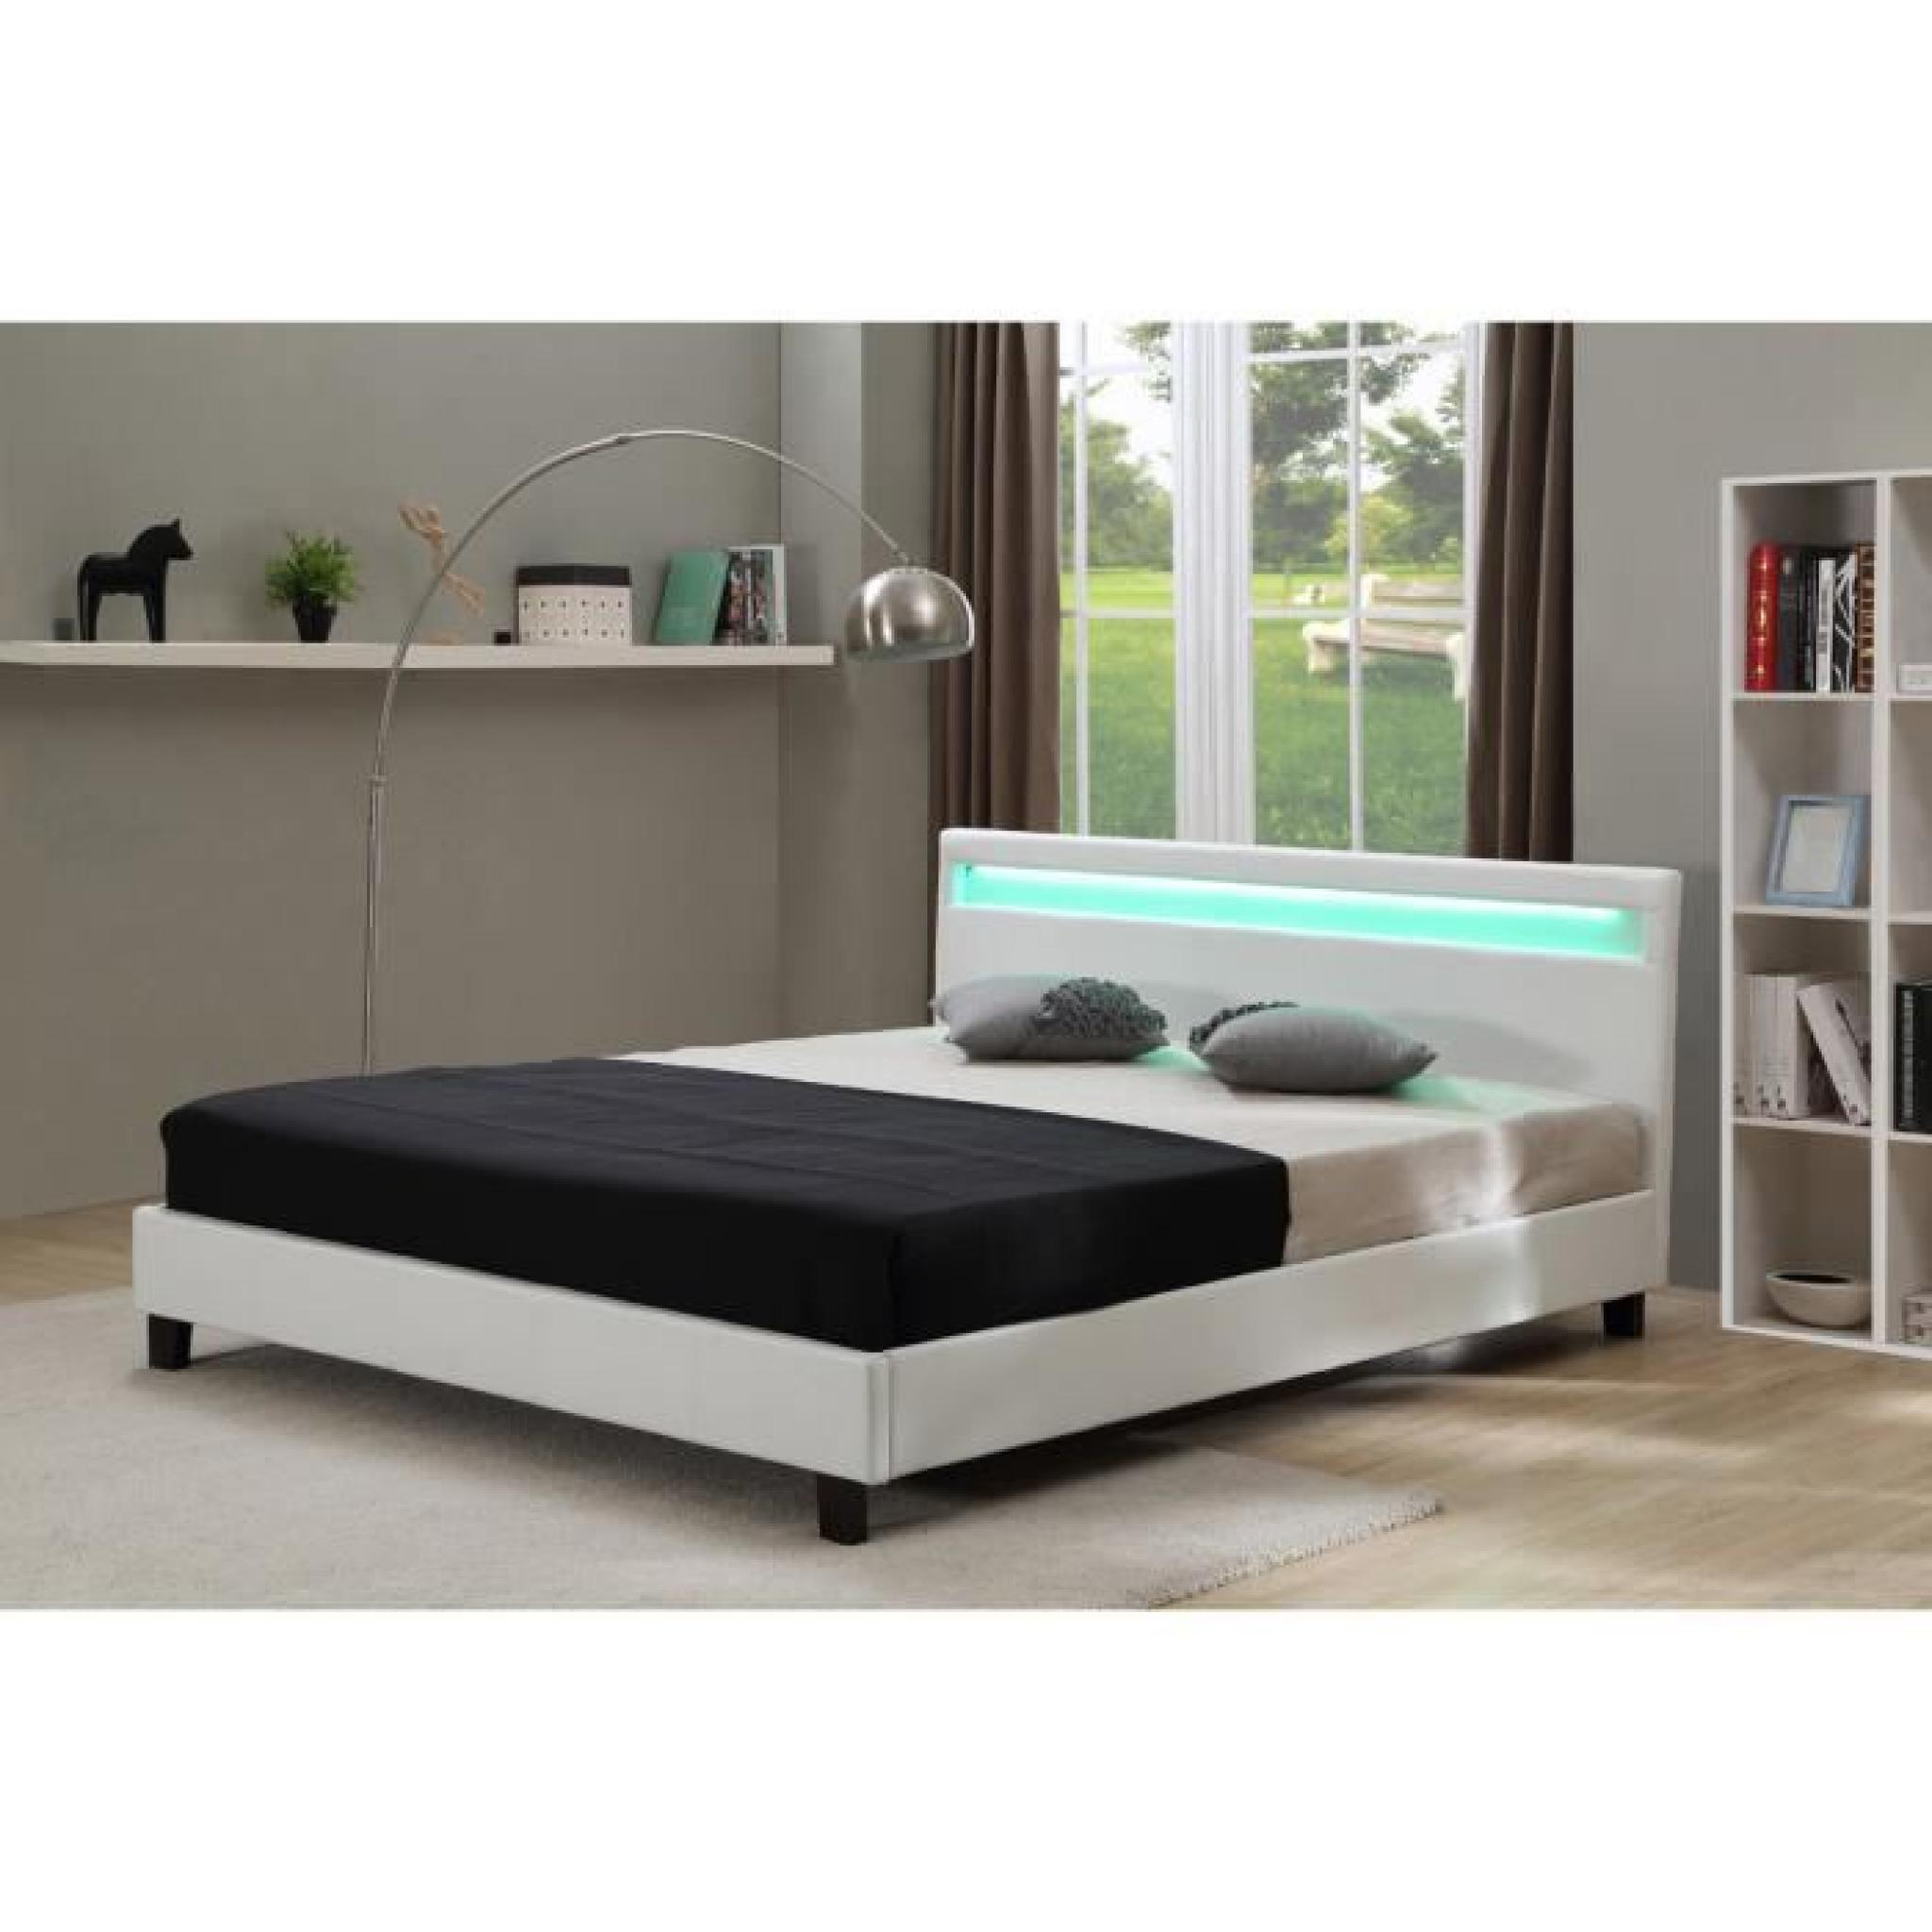 lit avec led maria blanc 140 x 190 cm achat vente lit pas cher couleur et. Black Bedroom Furniture Sets. Home Design Ideas